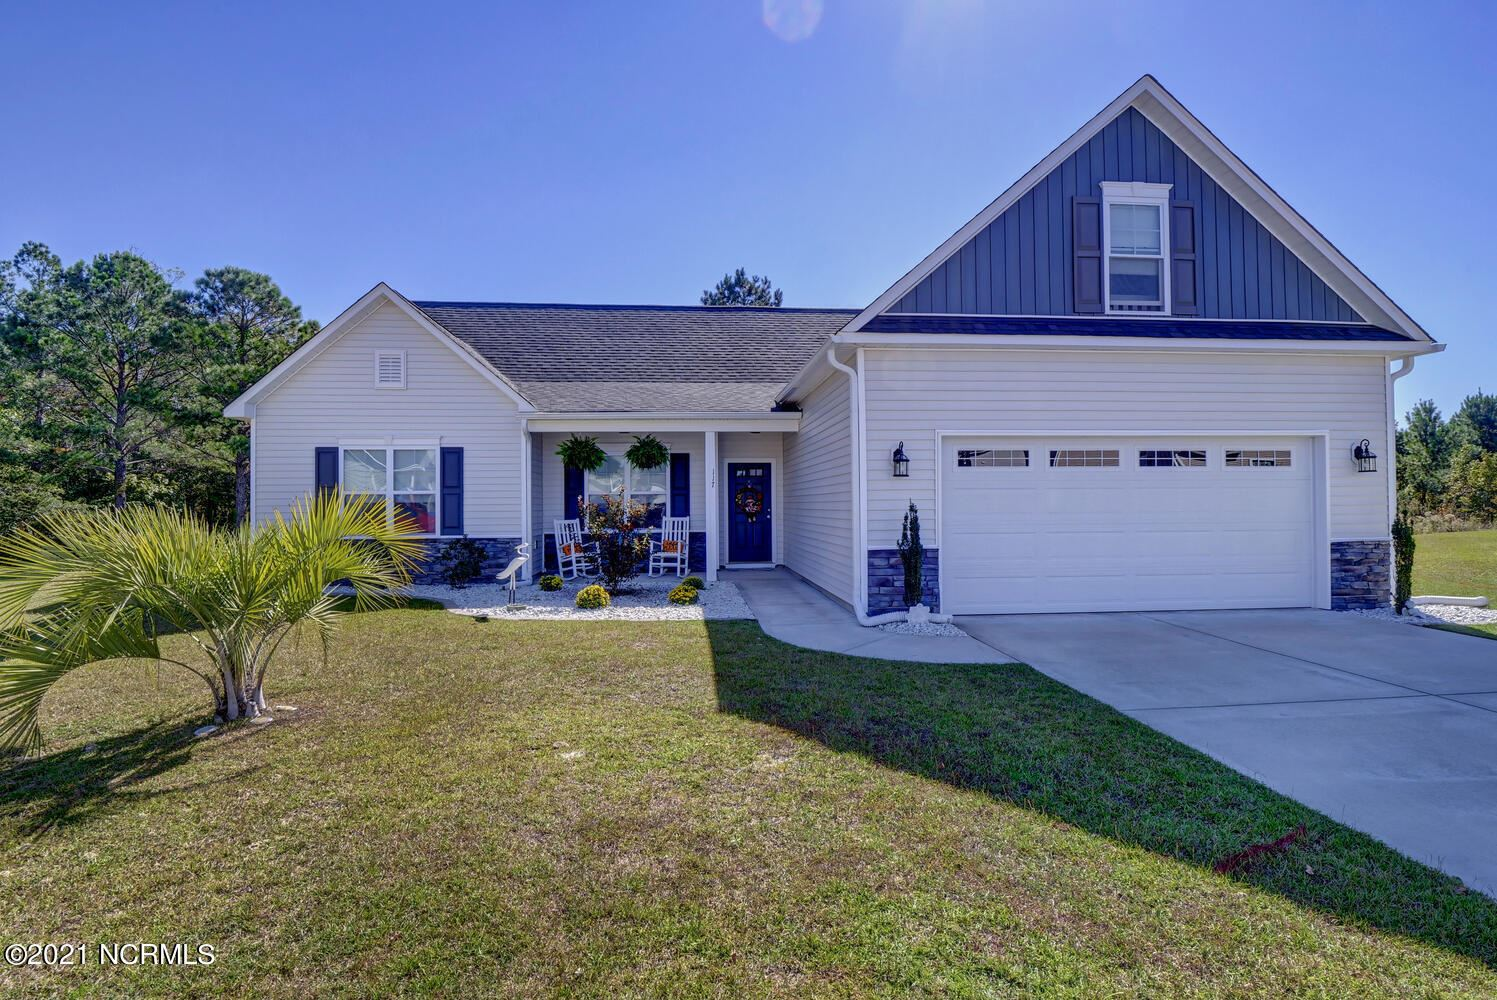 Photo of 117 Maxwell Drive, Rocky Point, NC 28457 (MLS # 100295795)